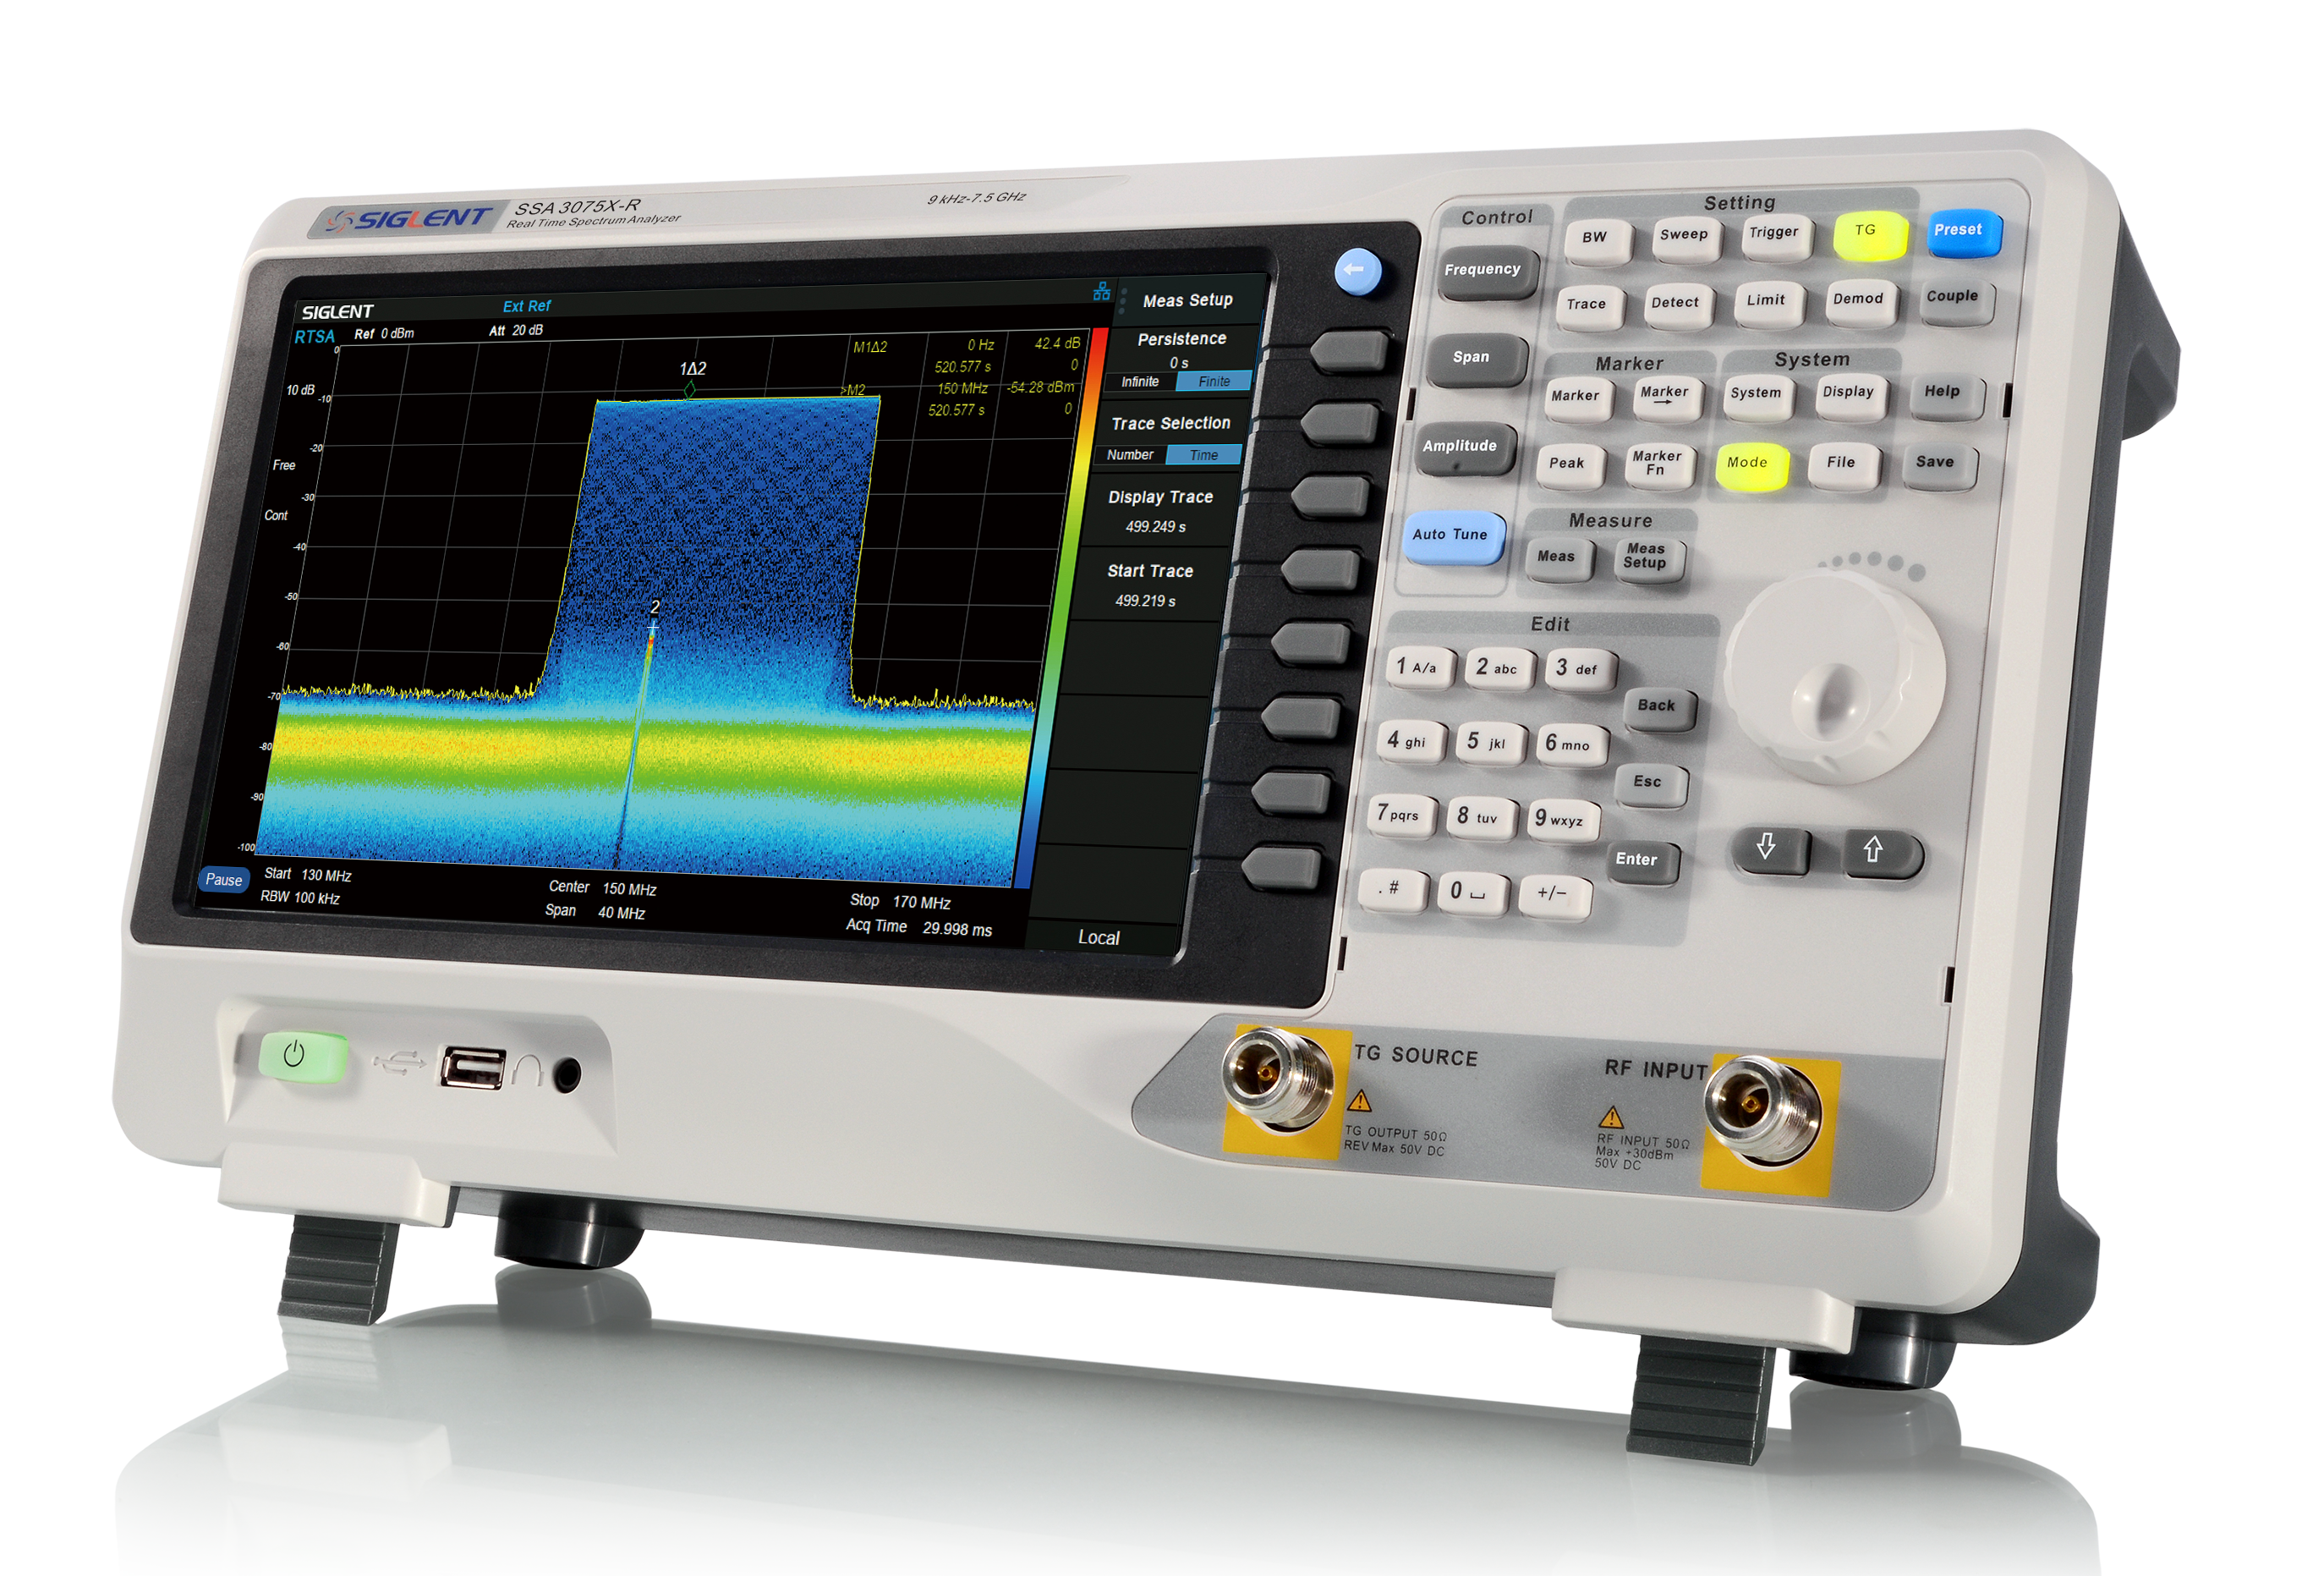 Economical SSA3075X-R 7.5GHz Real-Time Spectrum Analyzer